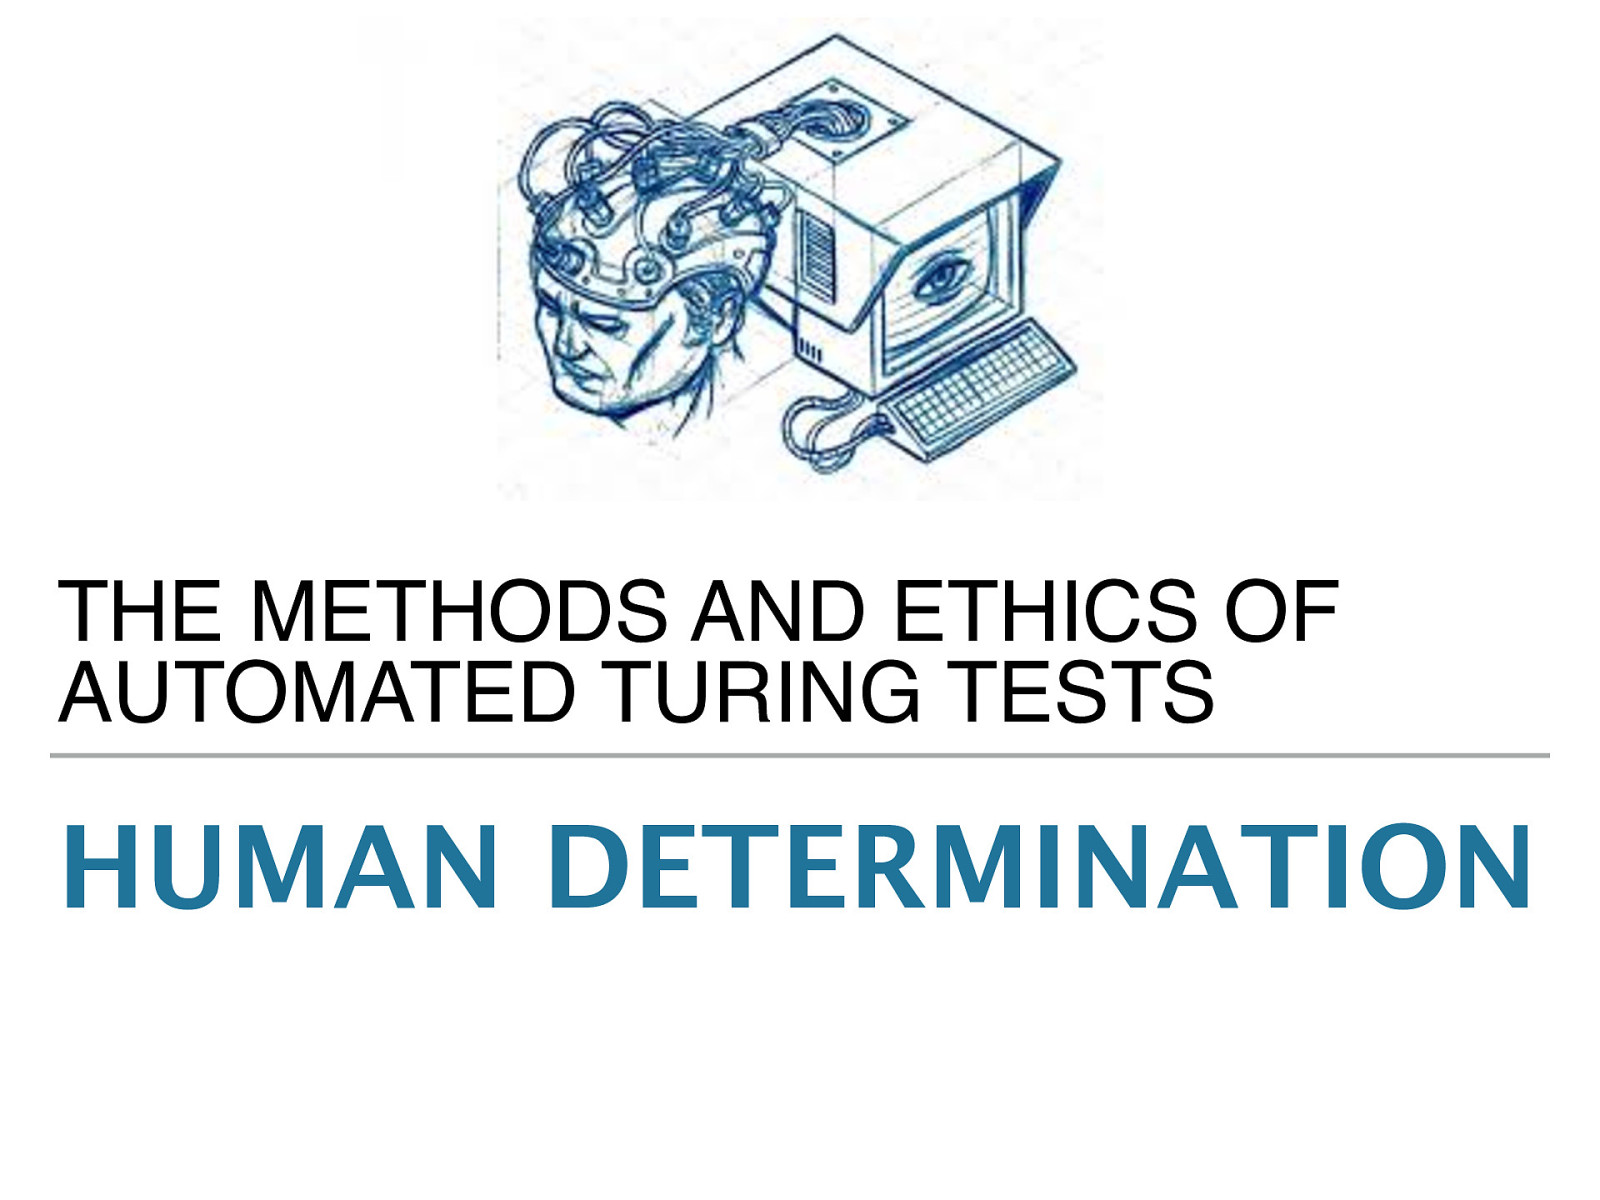 Human Determination: The Methods and Ethics of Automated Turing Tests